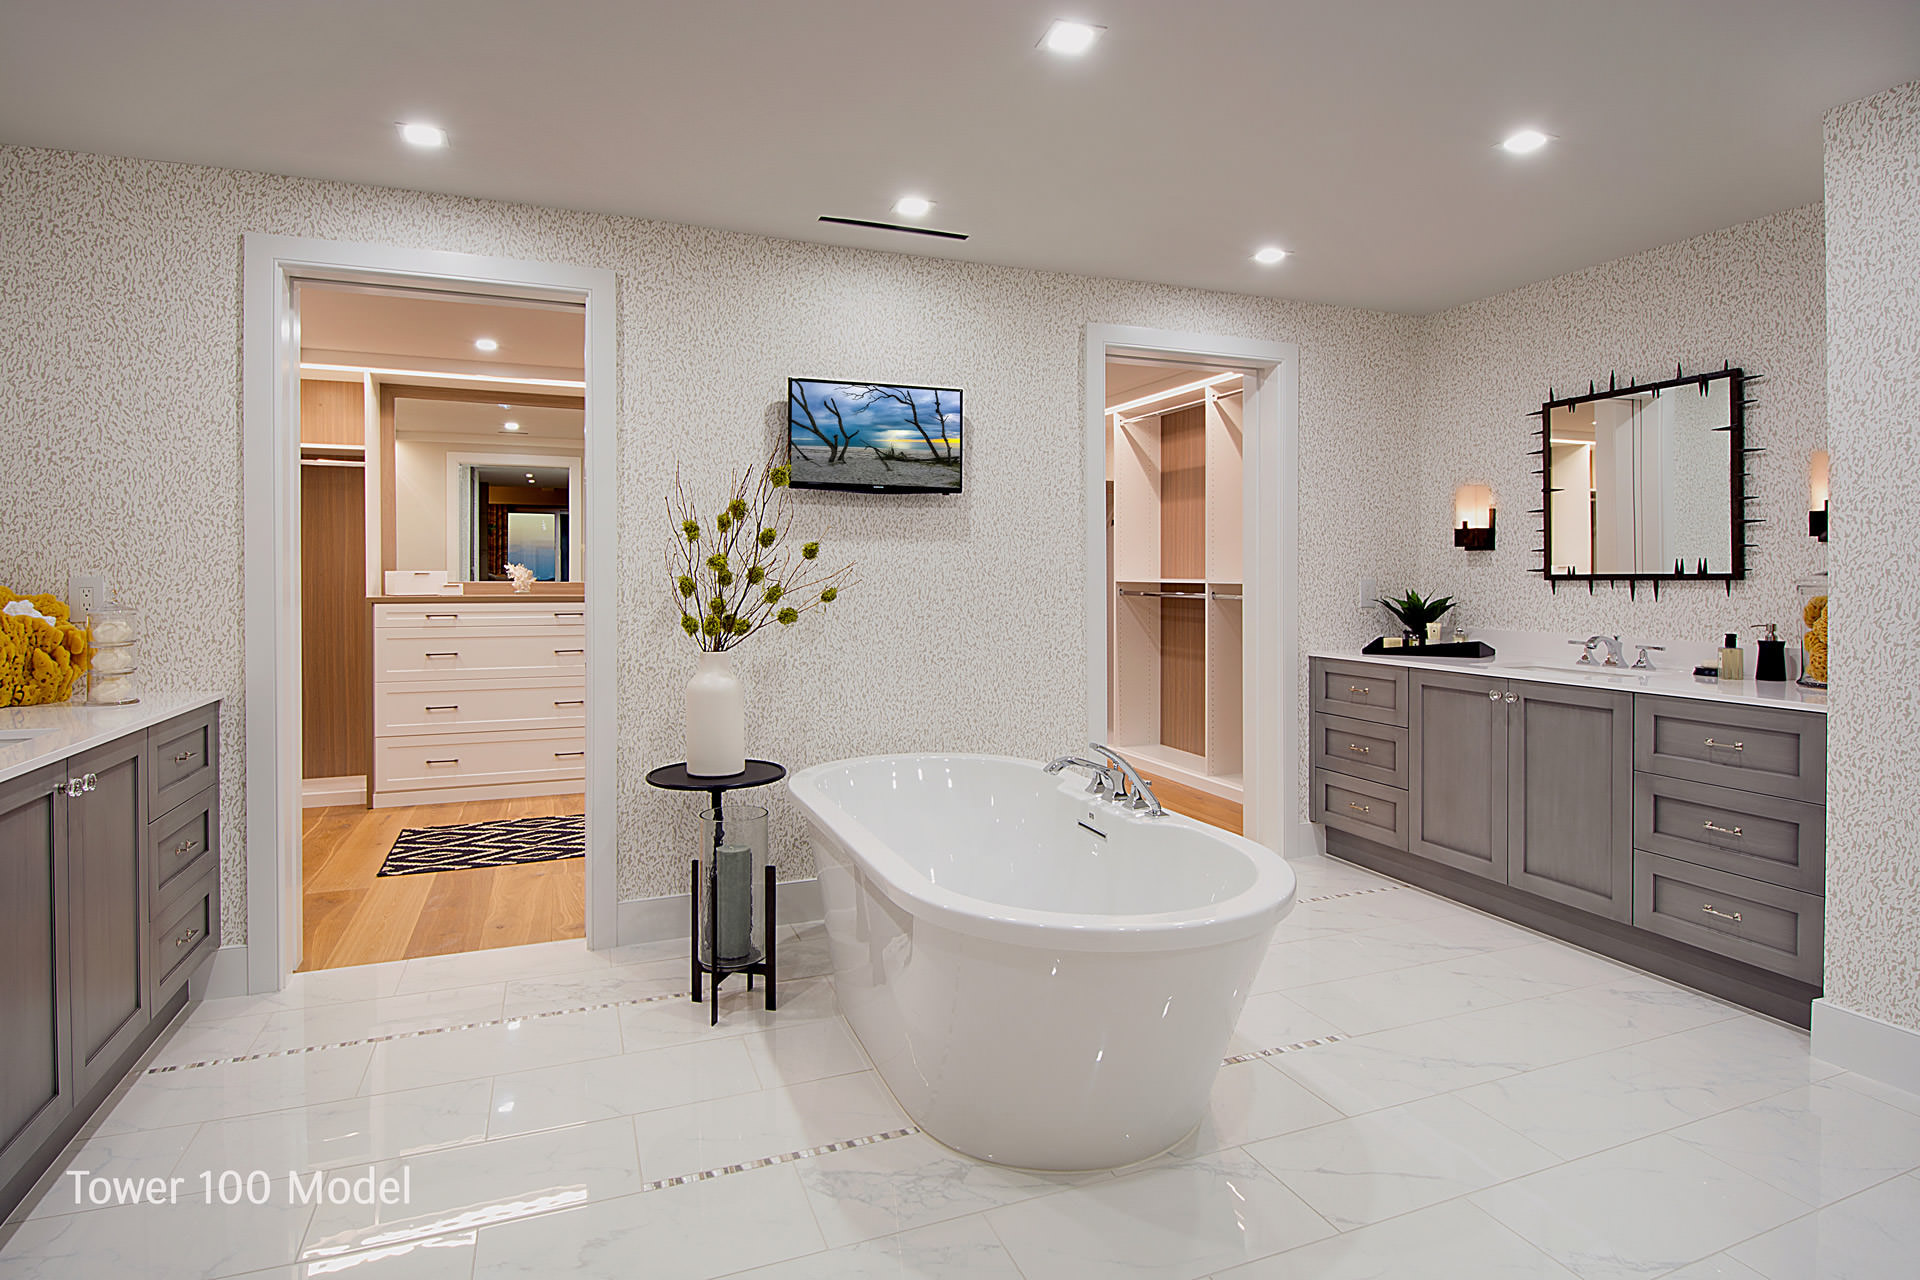 https://kaleabay.com/wp-content/uploads/2017/12/KaleaBay404withlabel_Master-Bath.jpg